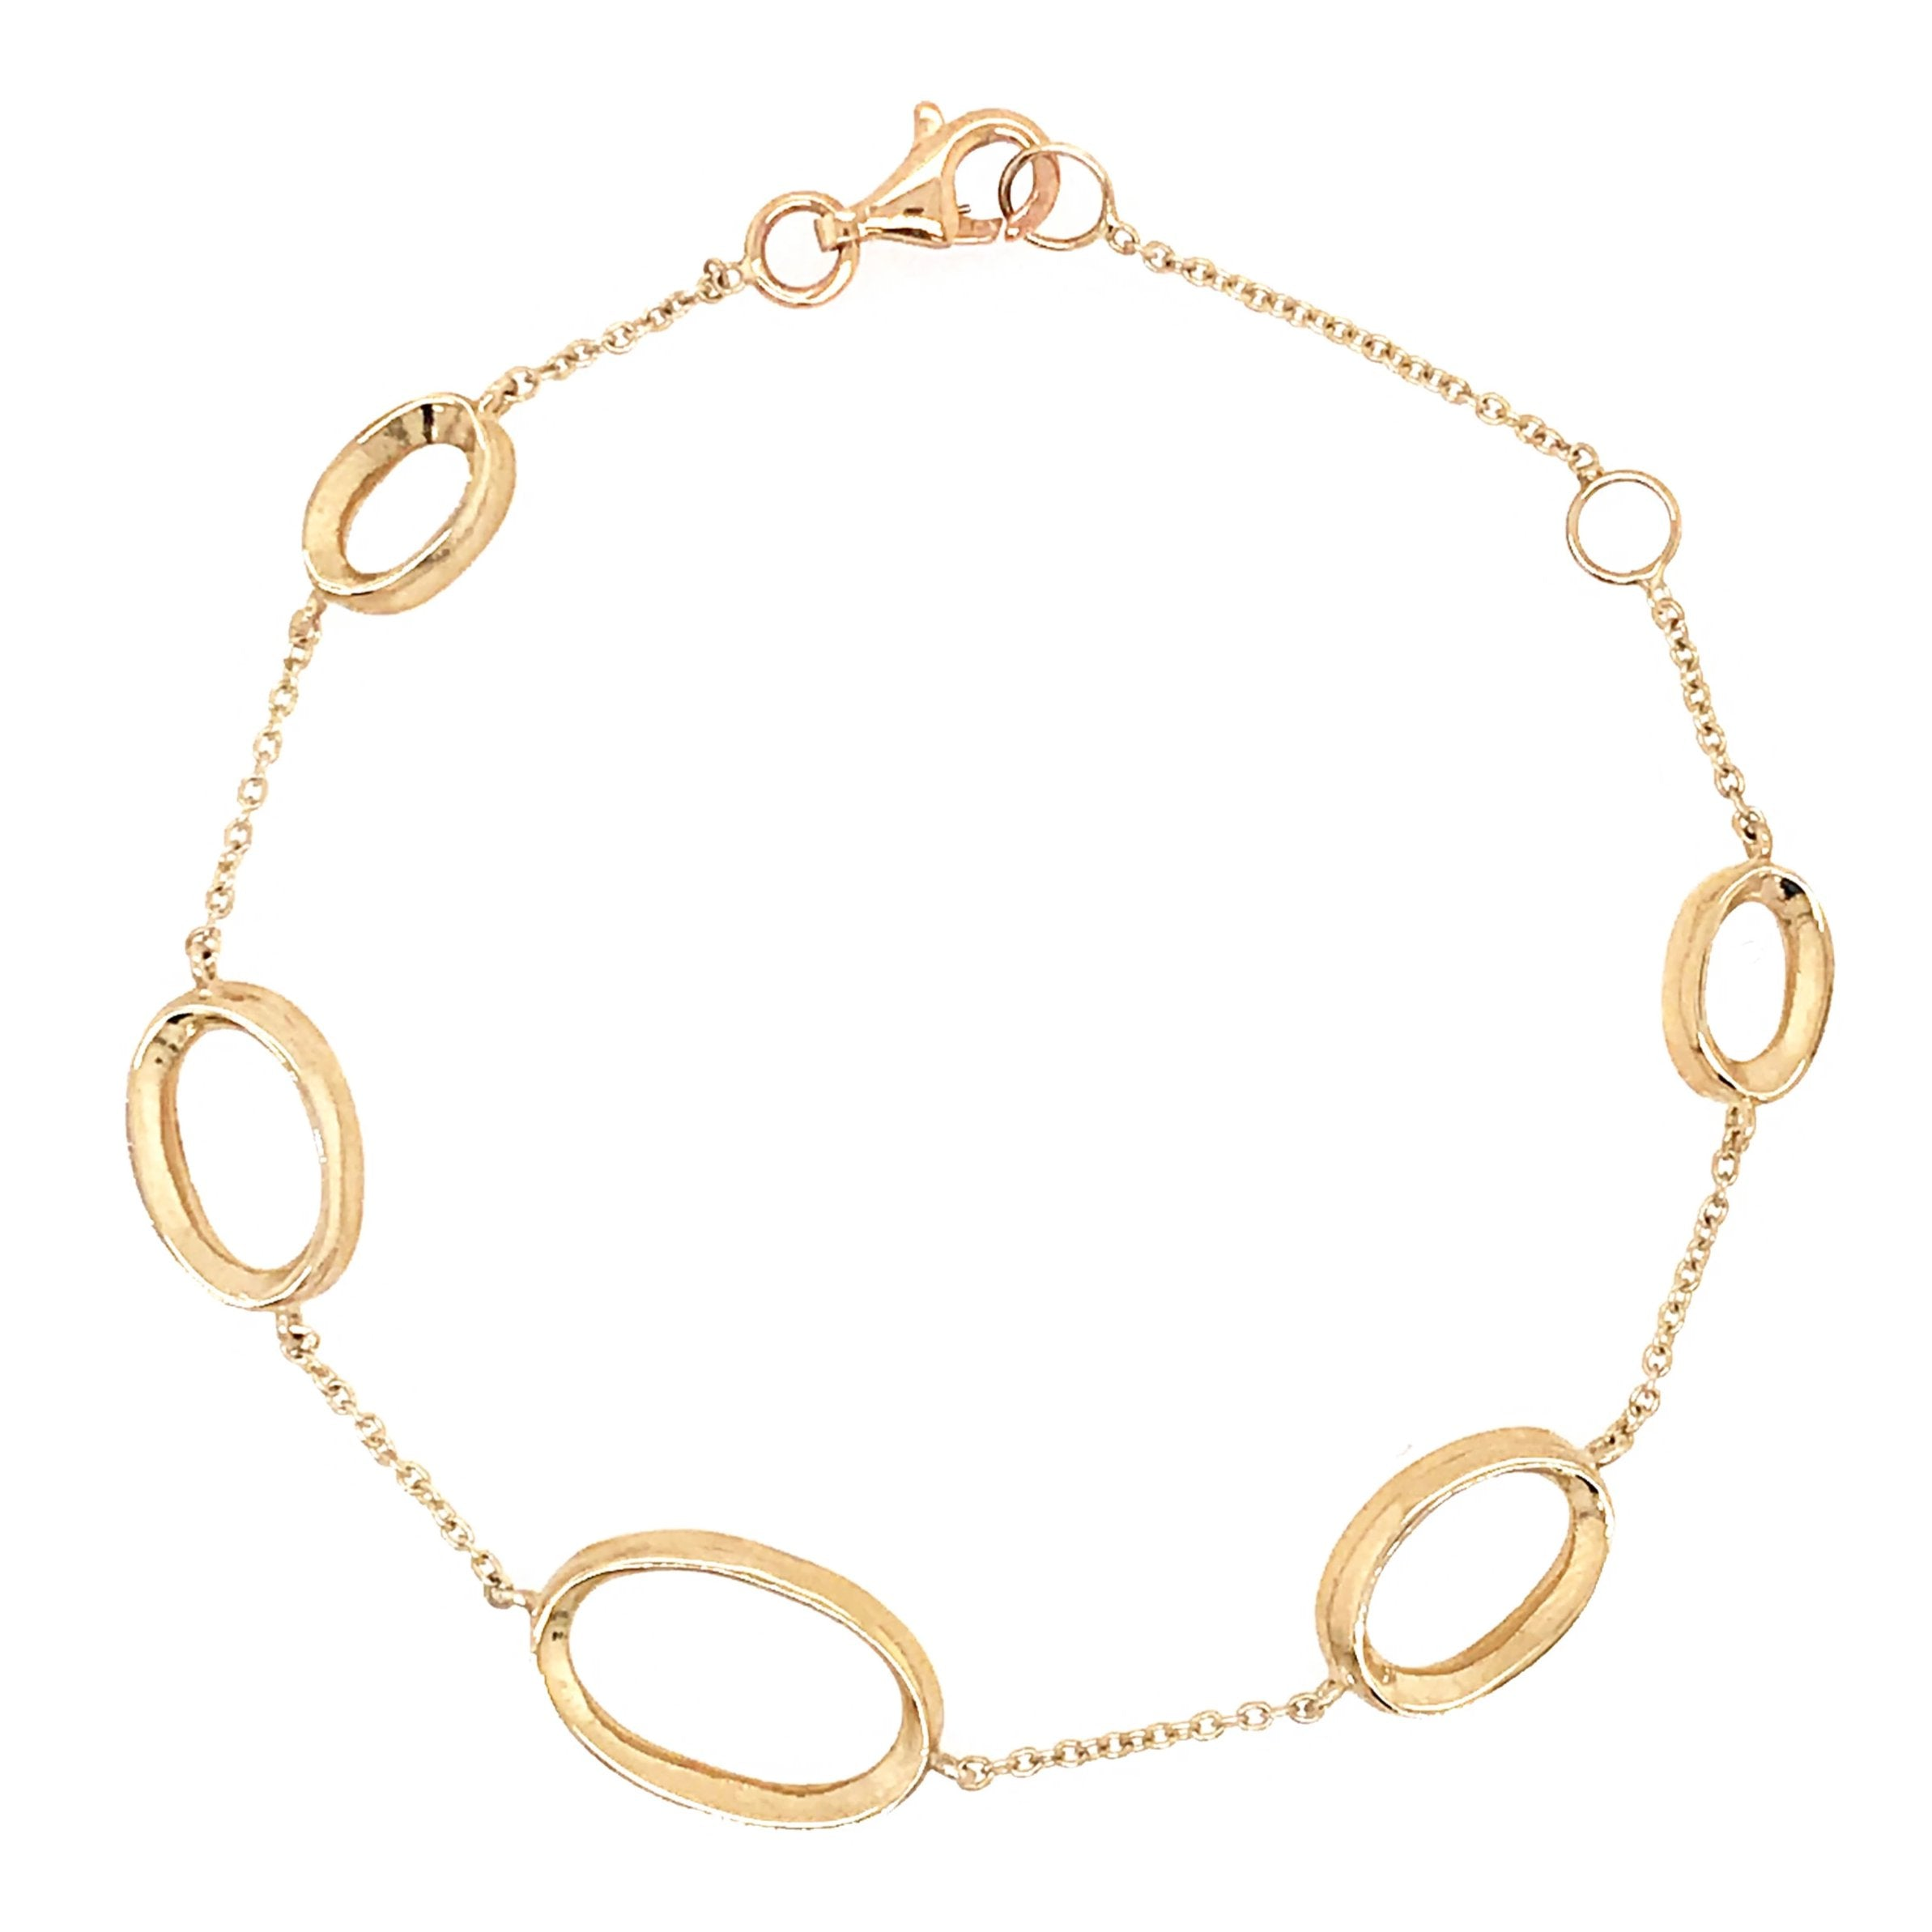 9ct Yellow Gold Oval Link Chain Bracelet - Andrew Scott